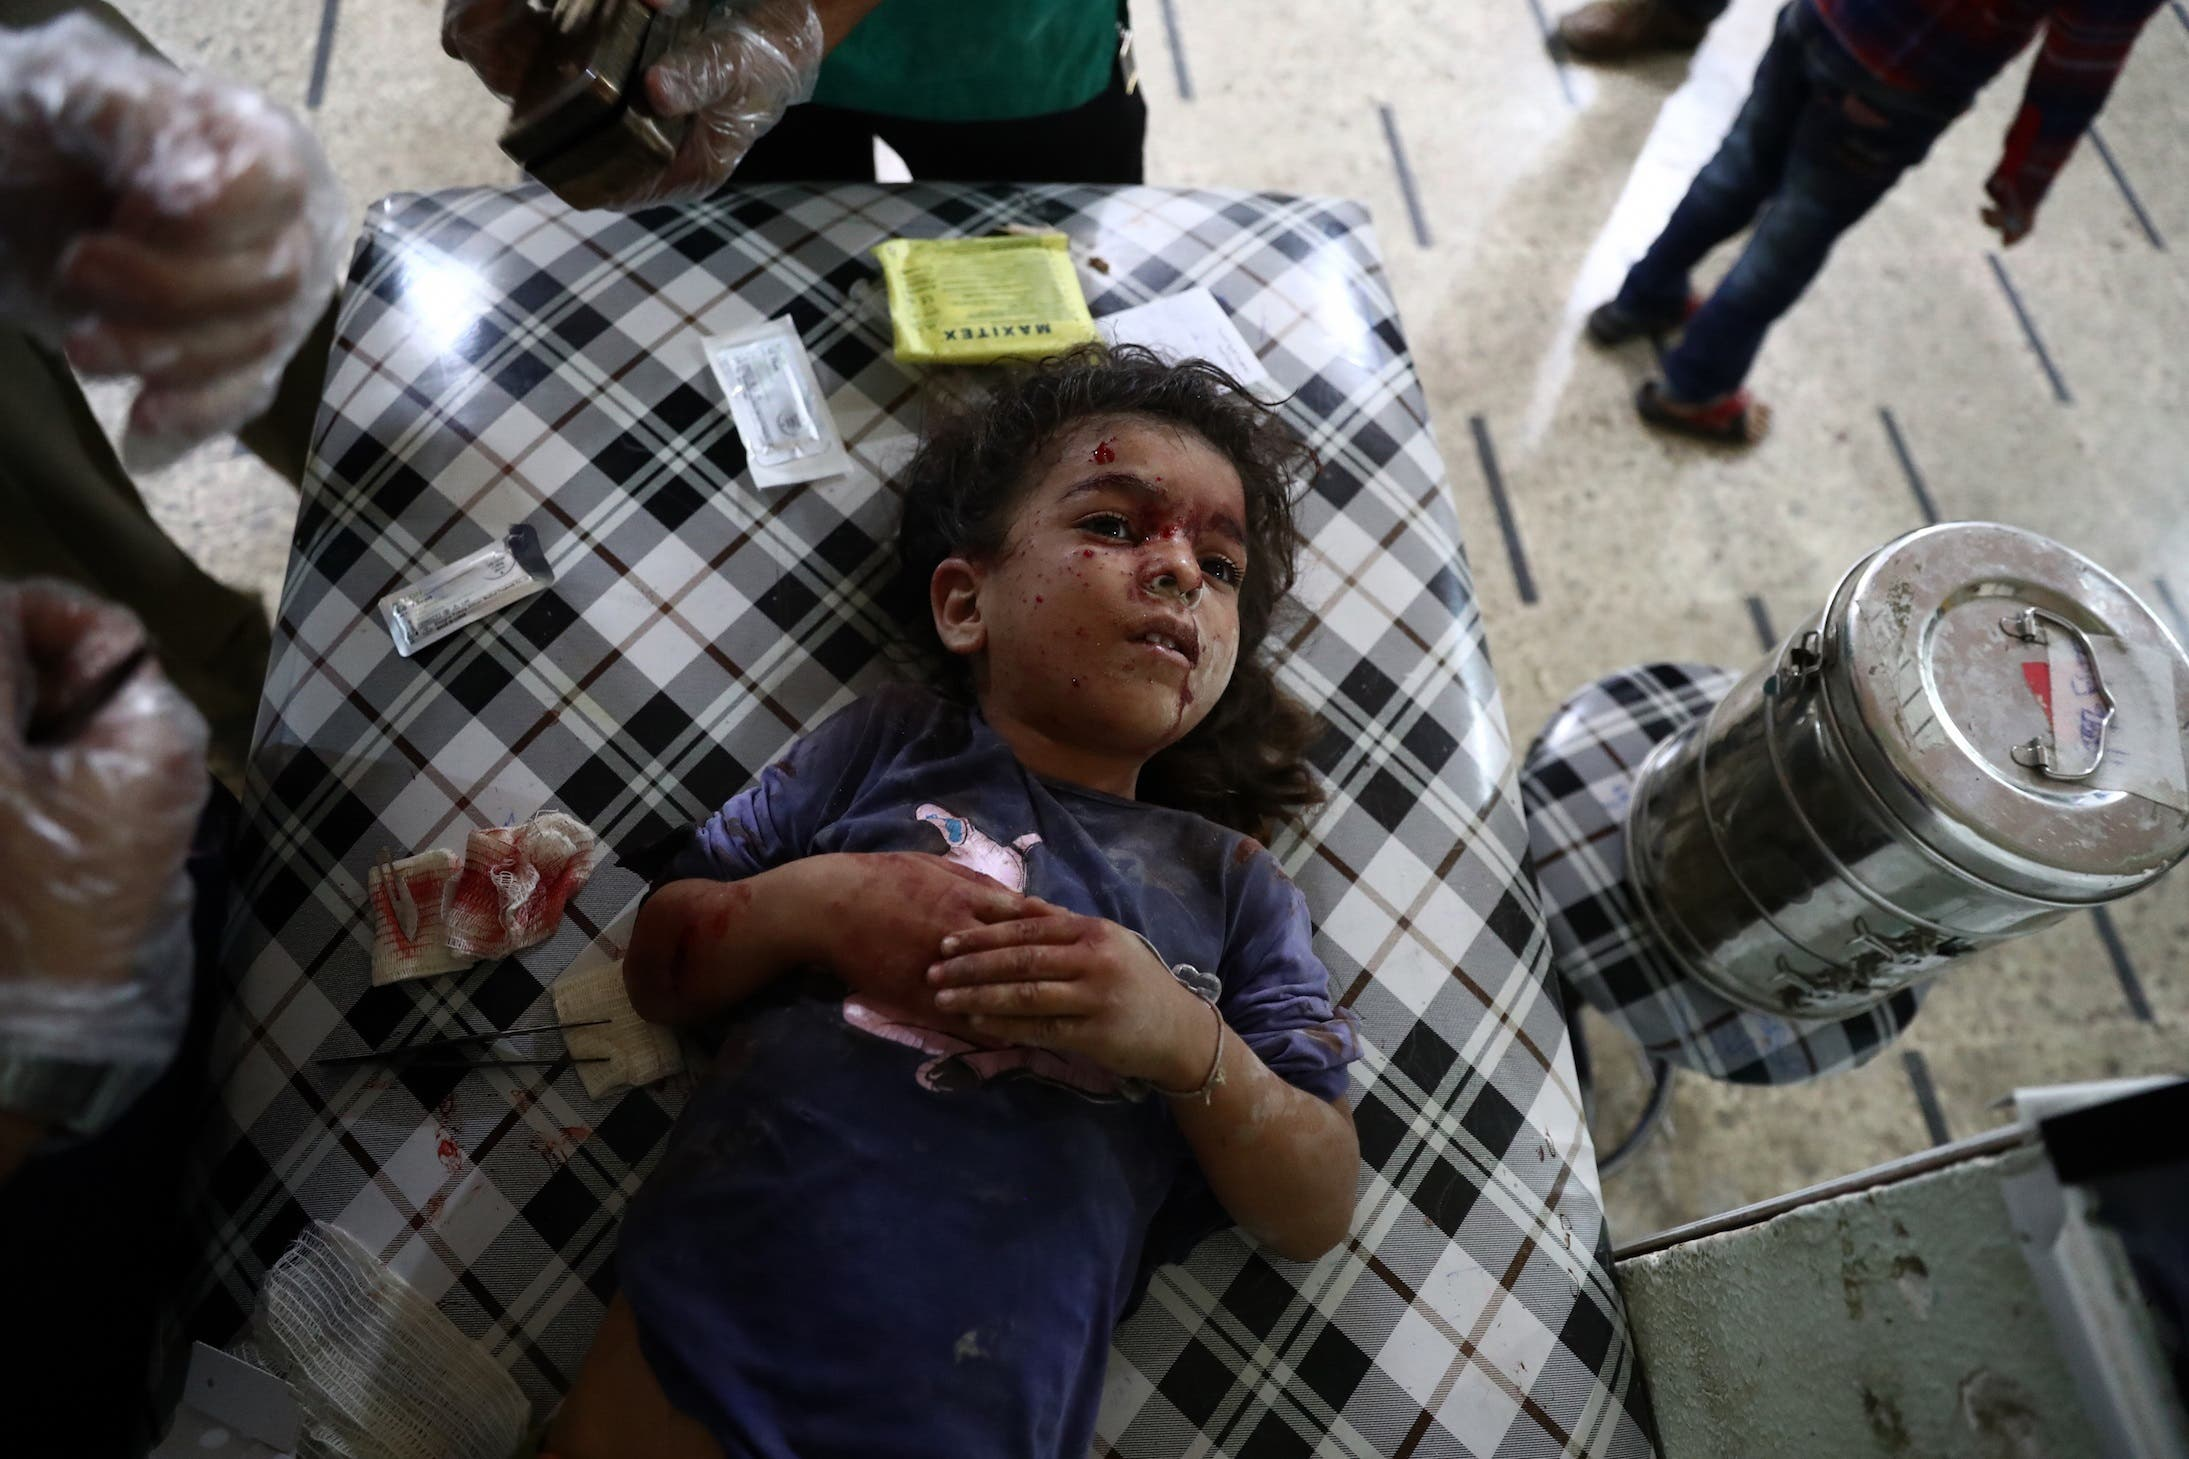 An injured Syrian child receives treatment at a makeshift hospital on October 3, 2016, following reported air strikes in the rebel-held town of Douma, on the eastern outskirts of the capital Damascus. (AFP)